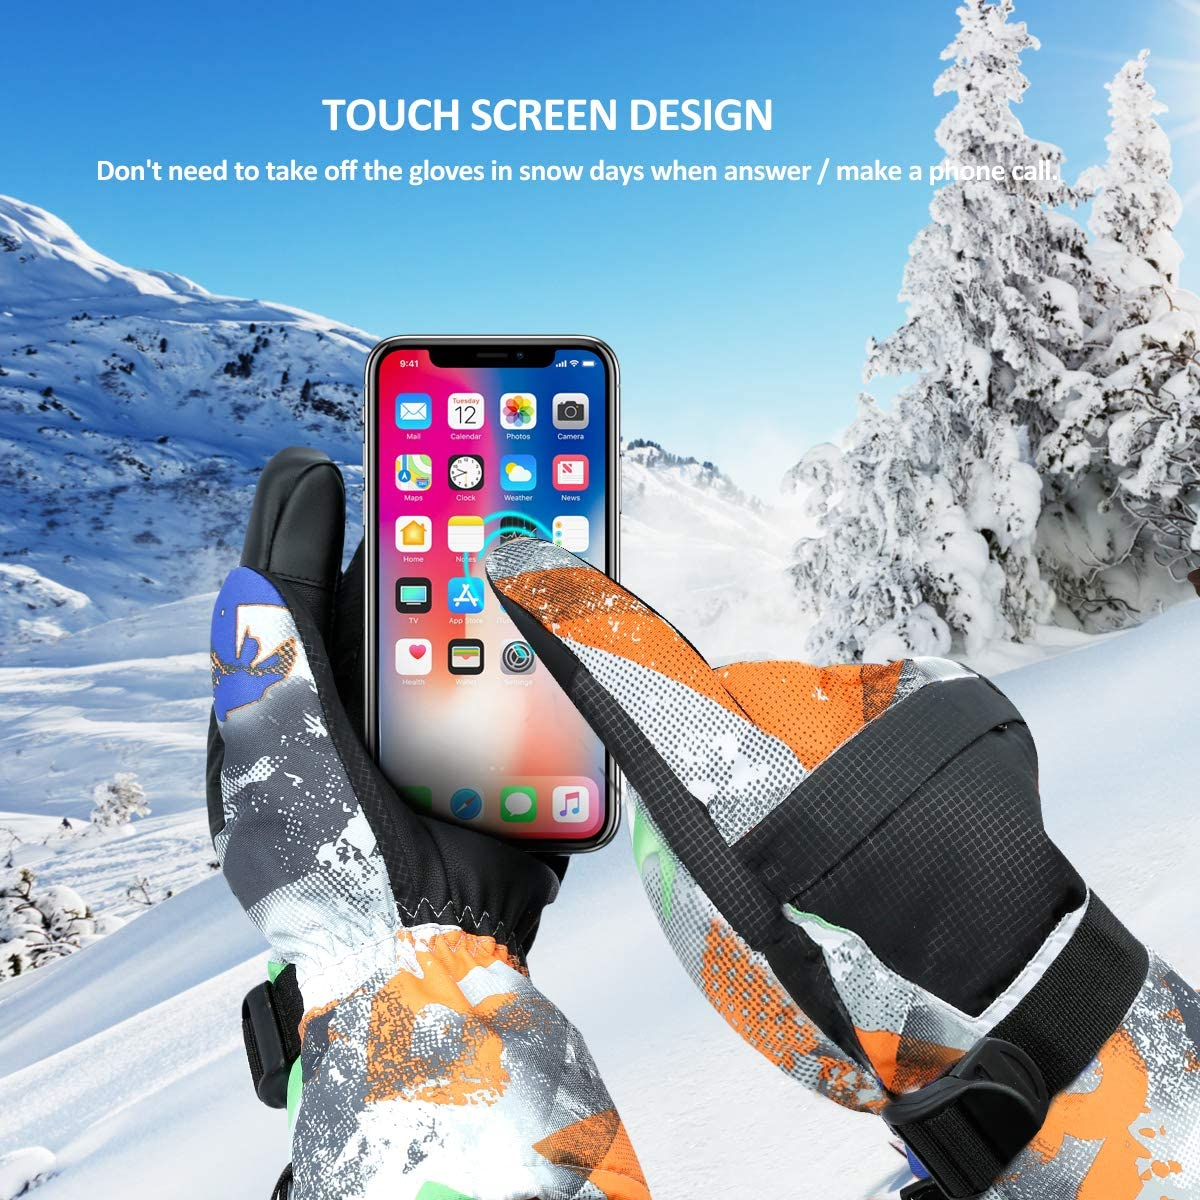 Shoveling Snowboarding Fits Both Mens /& Womens Motorcycle Winter Ski /& Snowboard Gloves Waterproof Touchscreen /& Breathable Snow Gloves for Skiing Racing